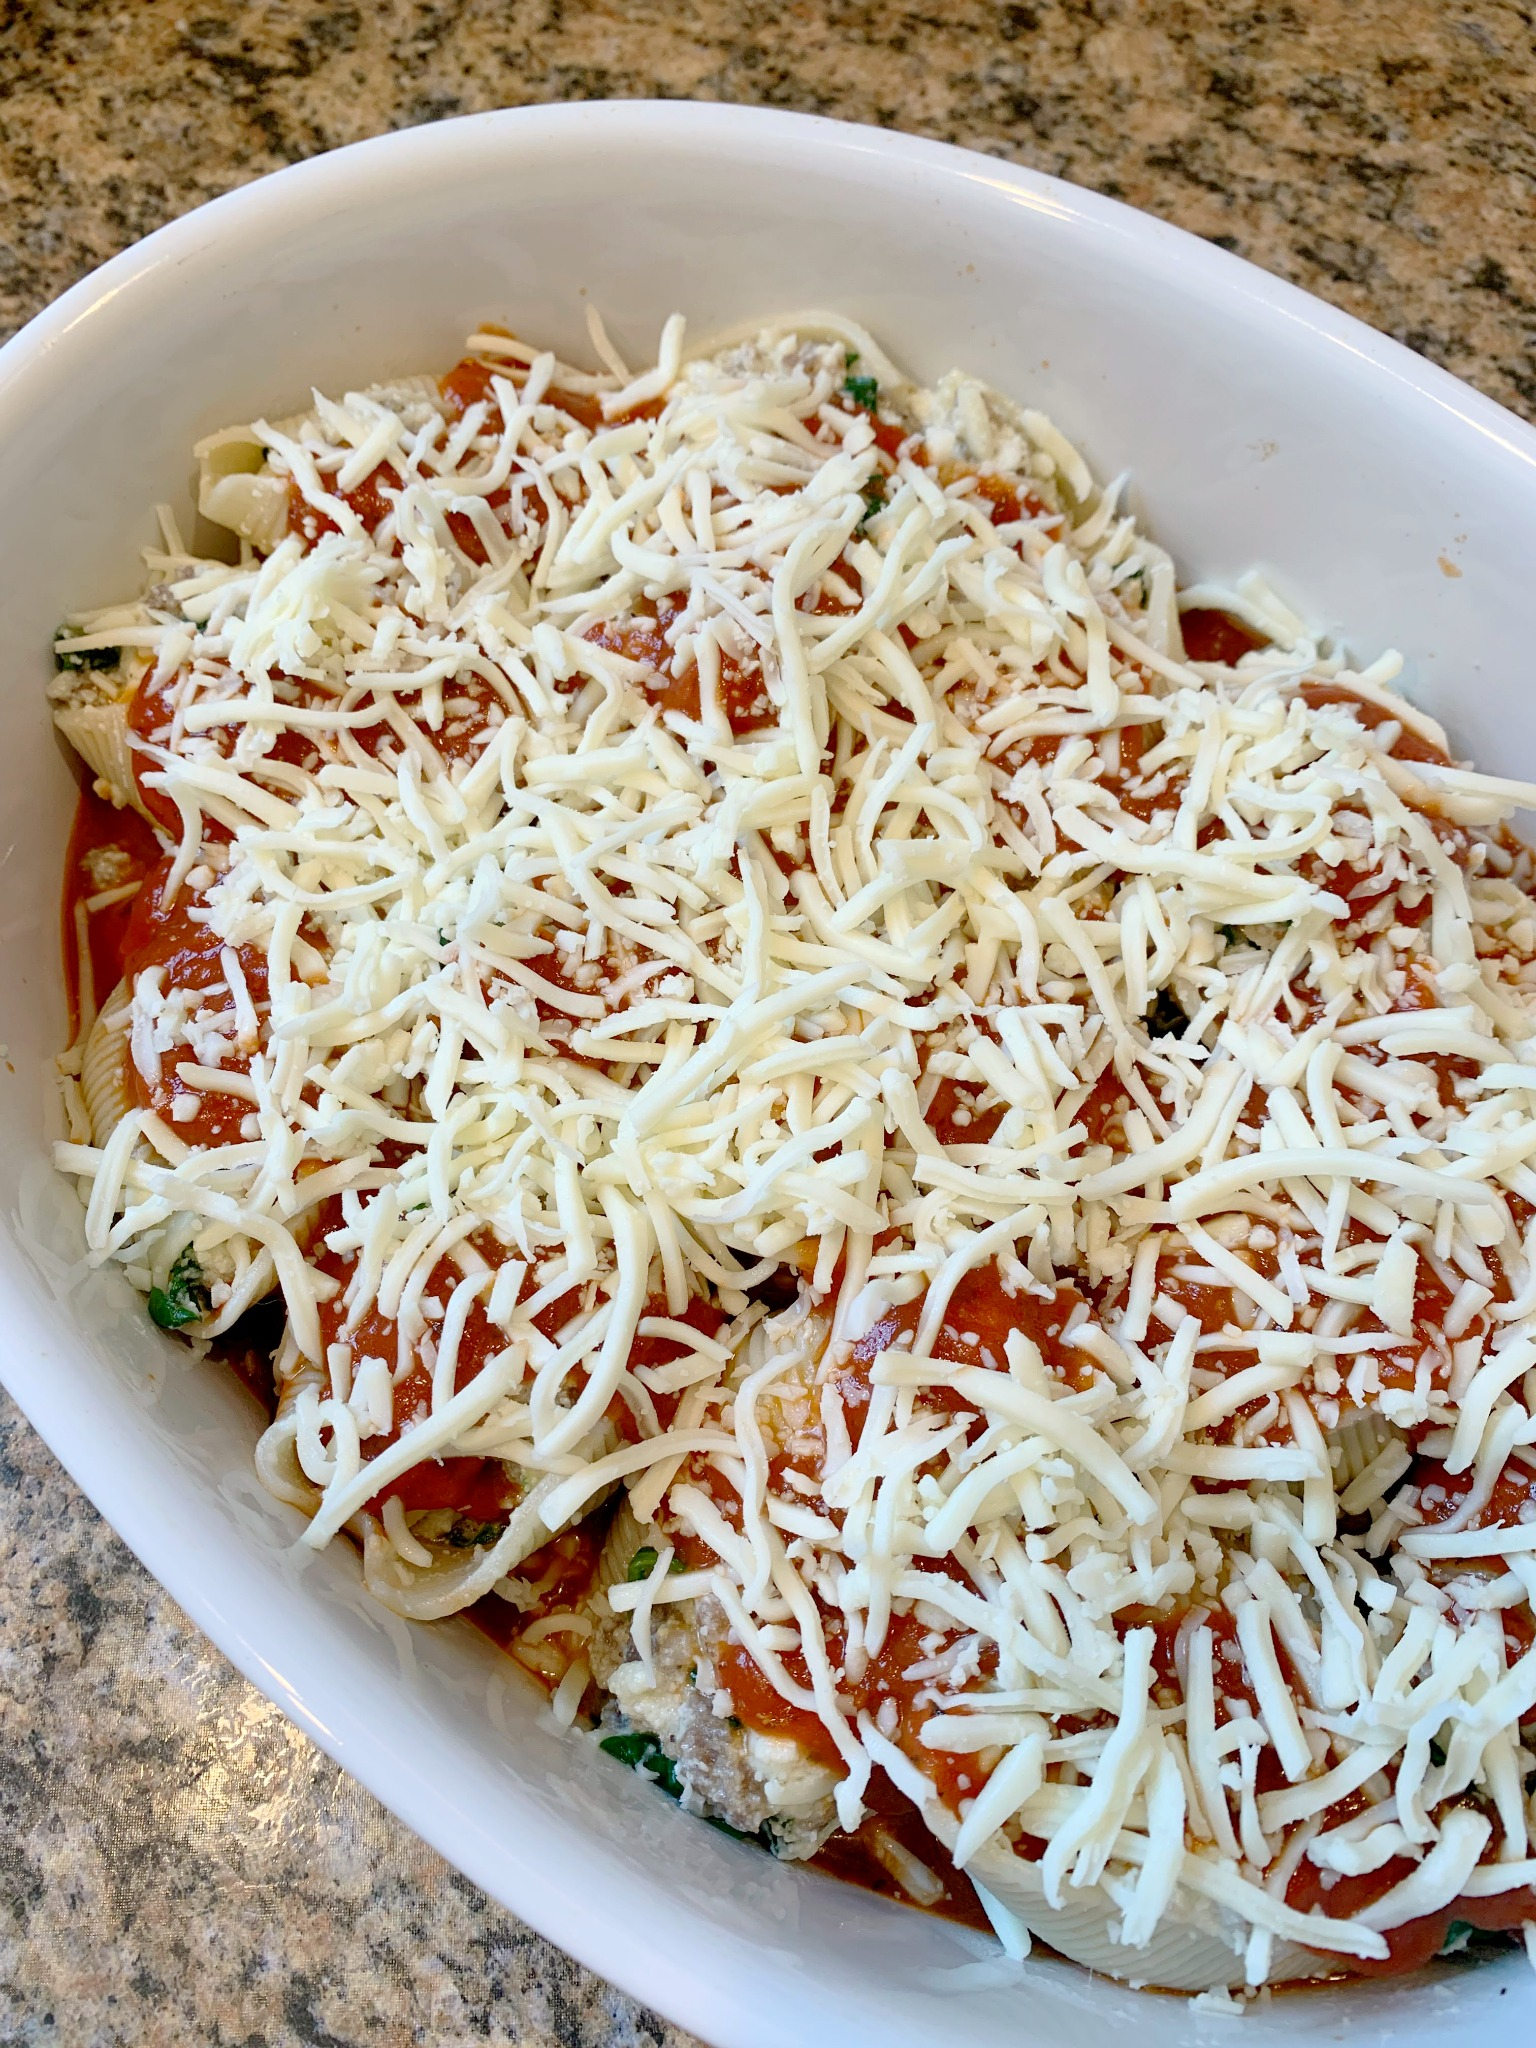 stuffed shells topped with grated cheese before baking